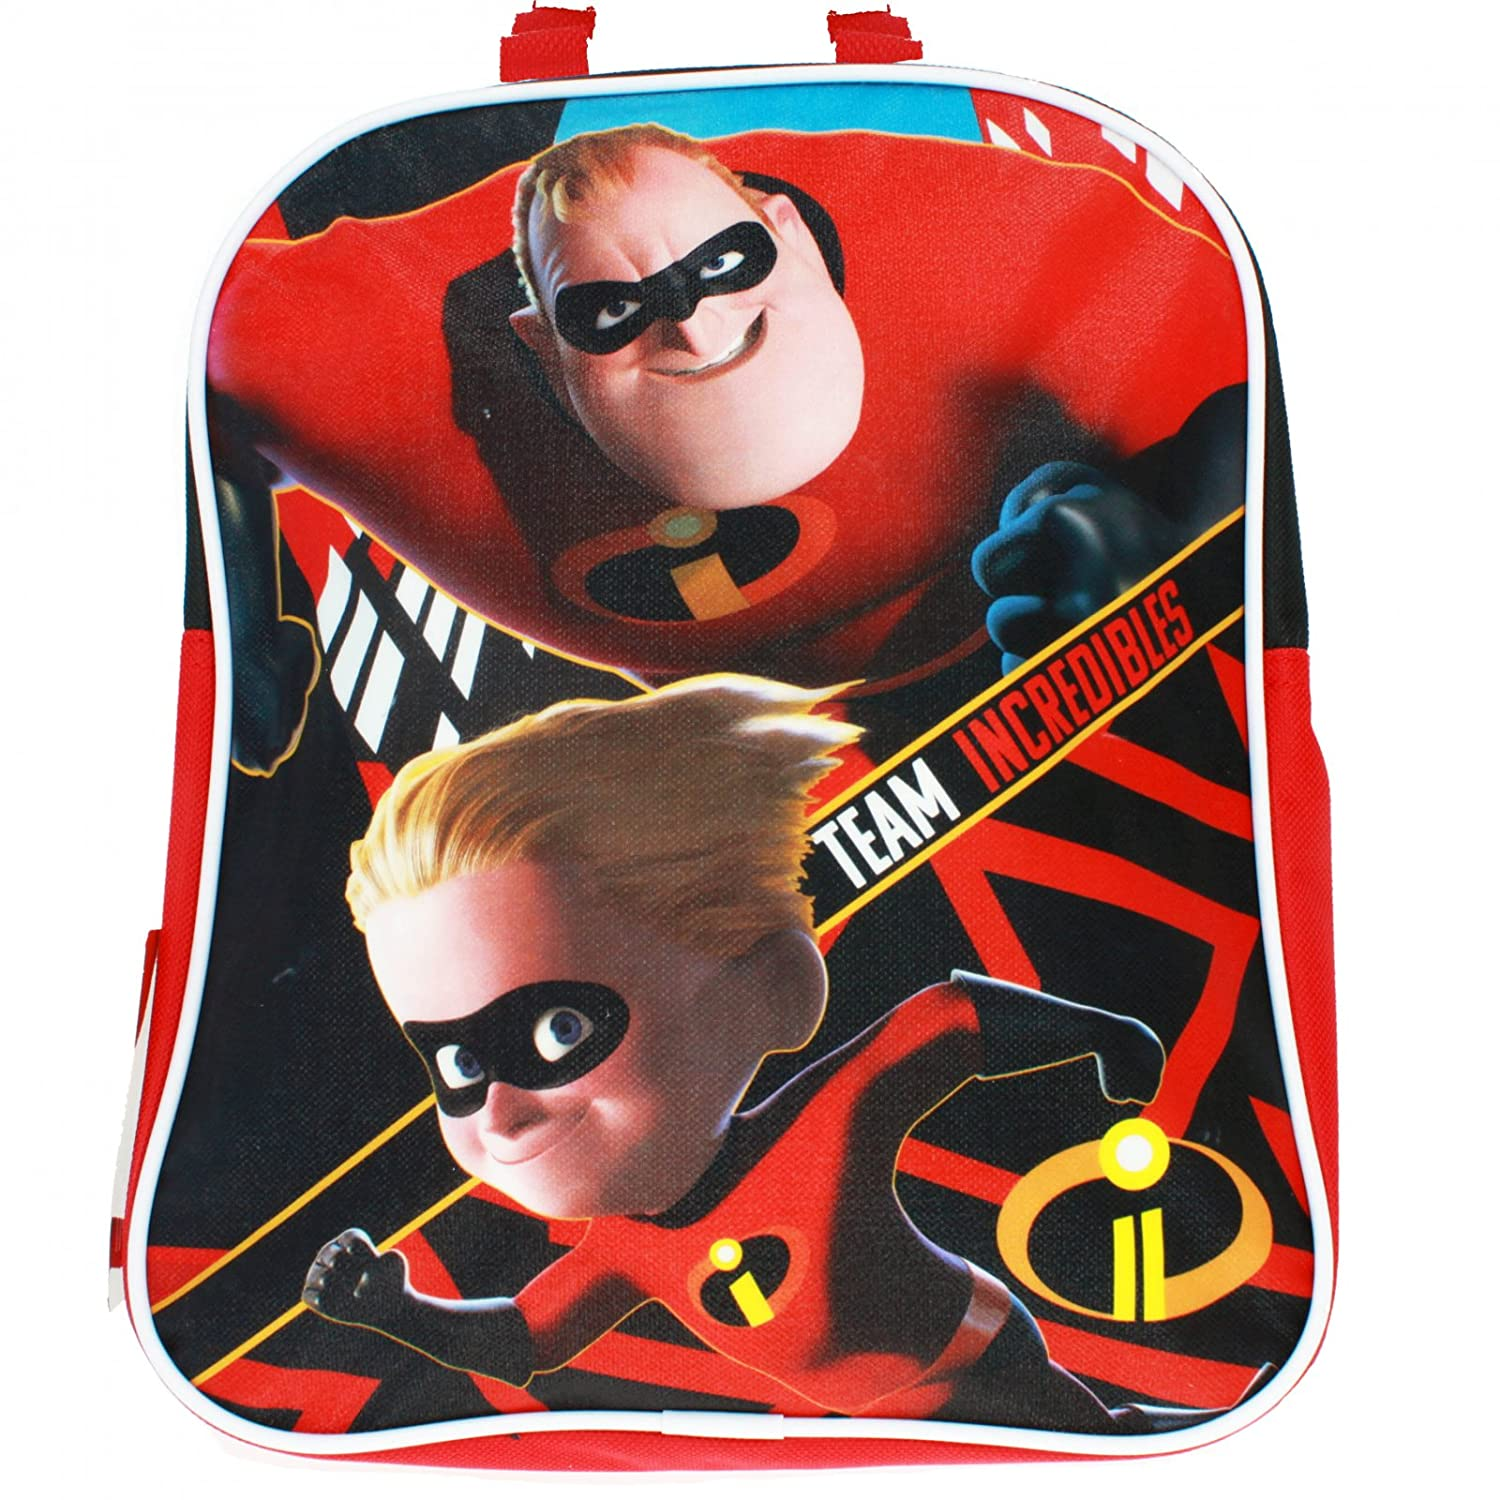 Disney Pixar The Incredibles 2 Movie Team Incredibles Mini Backpack Book Bag for Back to School  11 Inches